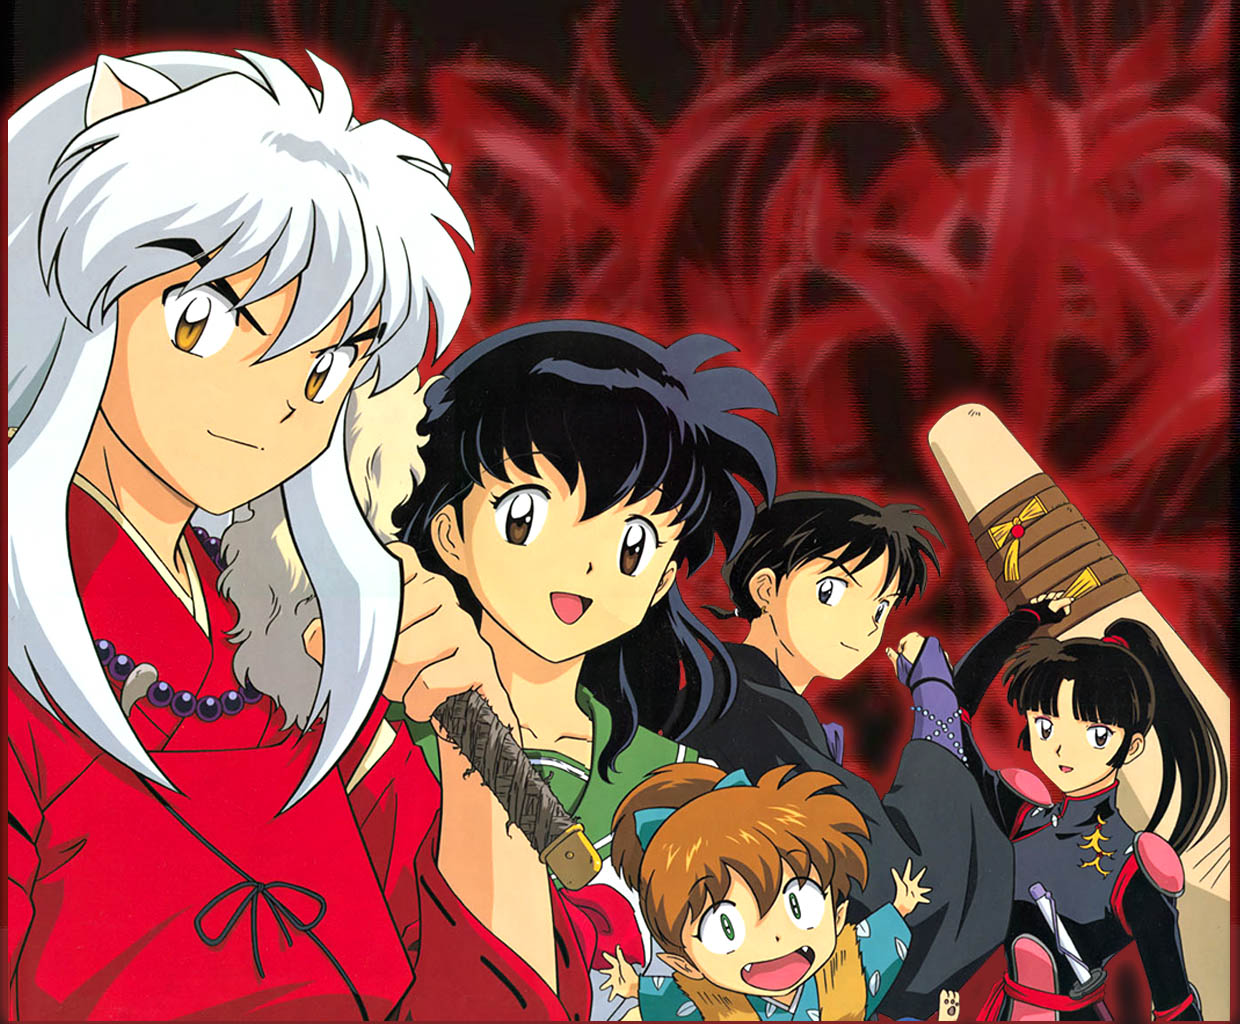 filmitelewizja - manga - inuyasha-group-wallpaper